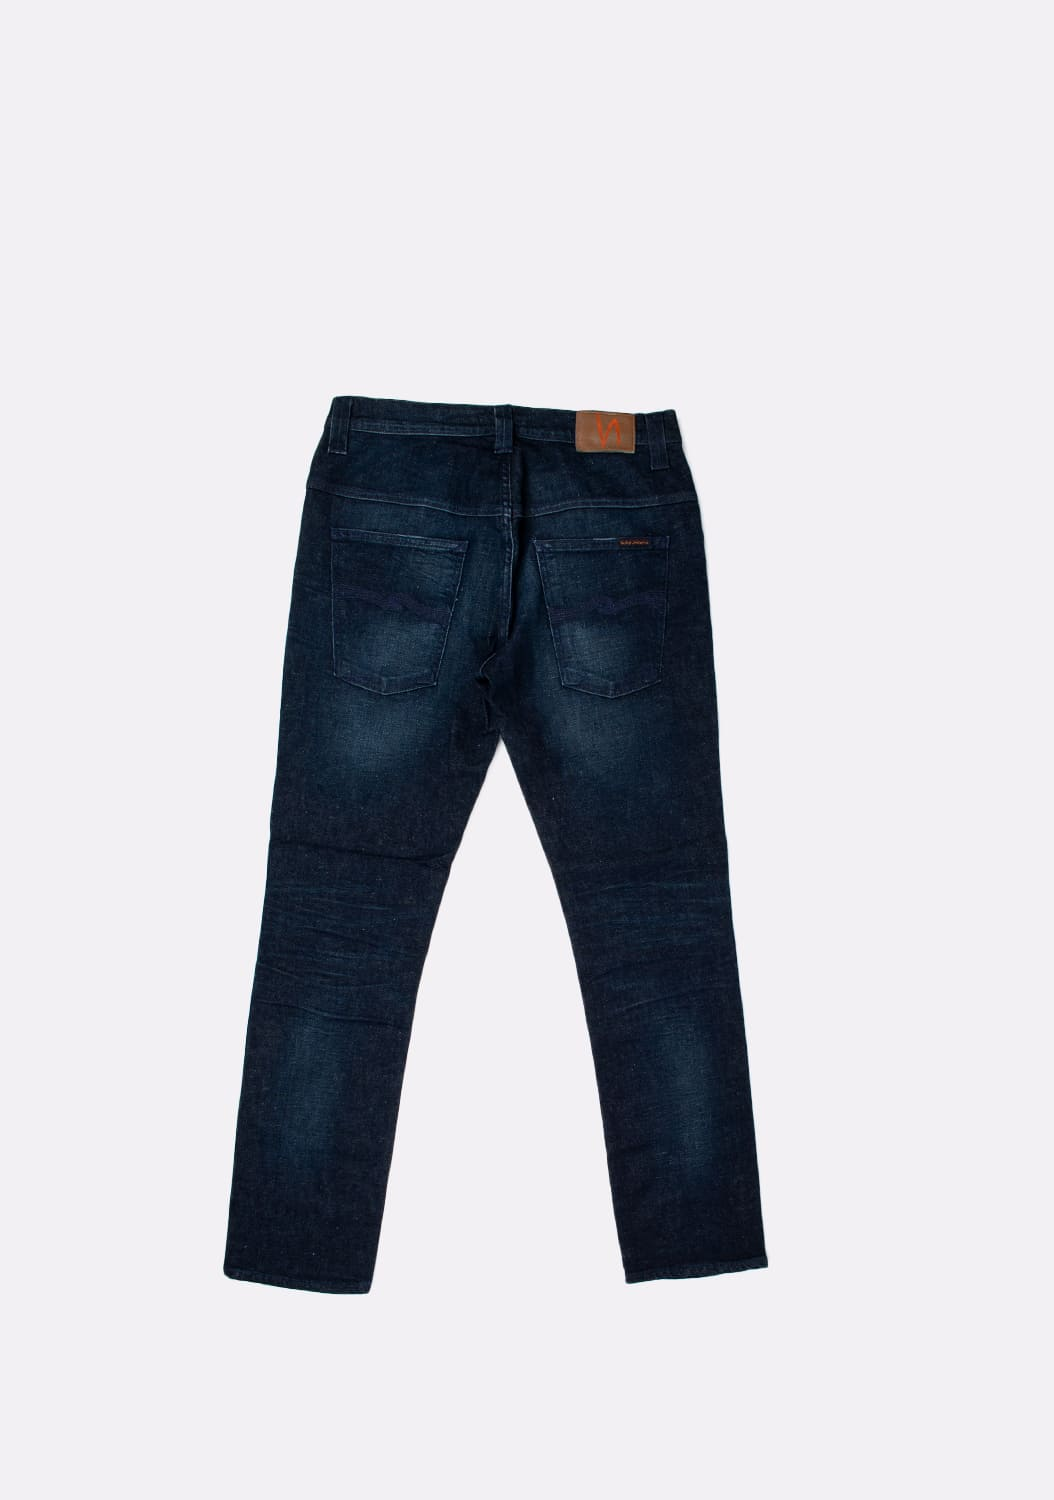 Nudie-Jeans-Tape-Ted-Org.-Nightcrawler-dzinsai-dydis-34-32 (4)